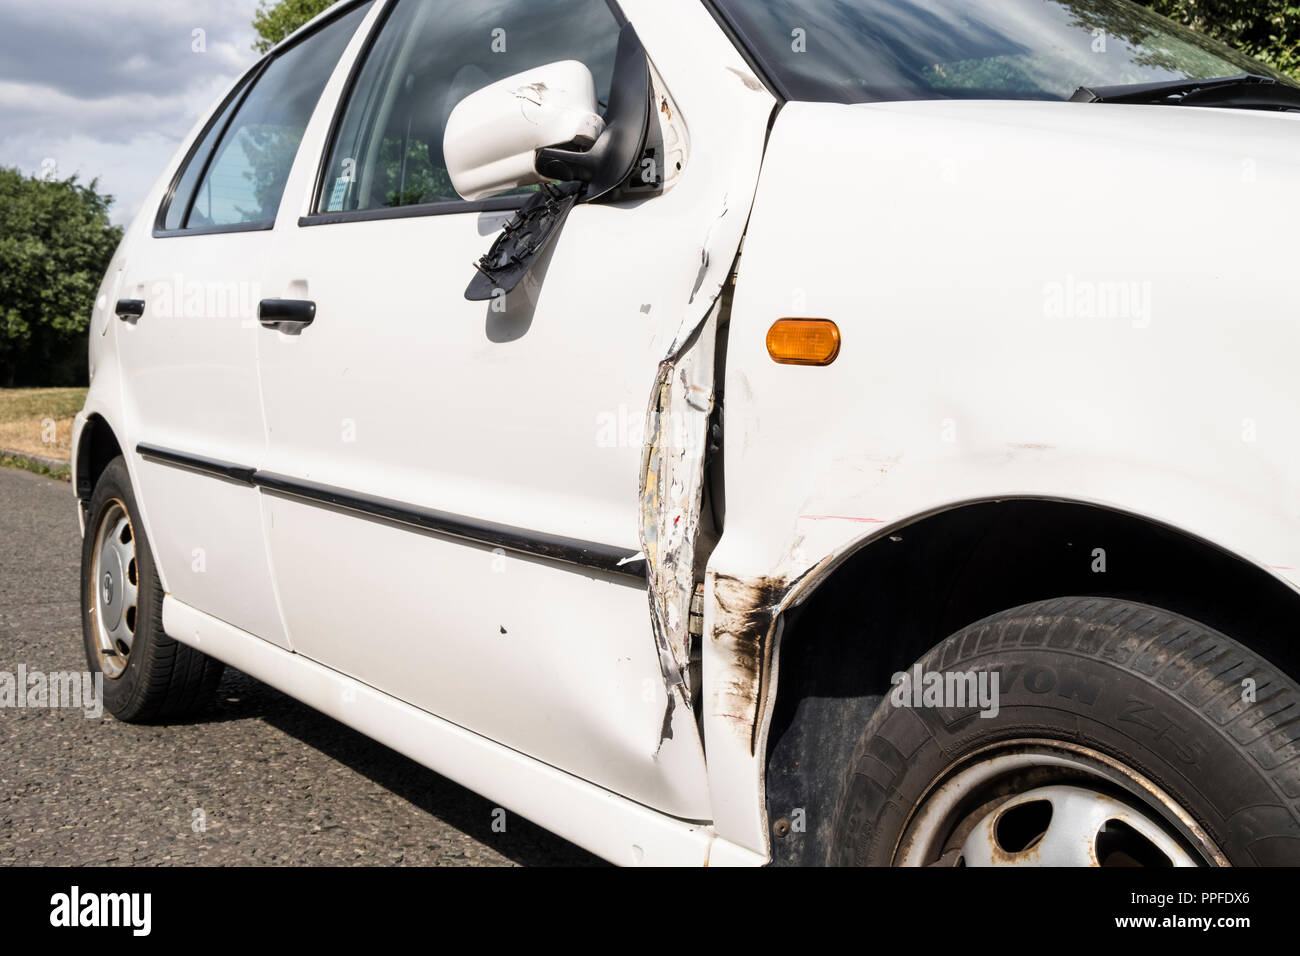 Car accident. Damaged car door, wing and broken wing mirror following a collision, Nottinghamshire, England, UK - Stock Image